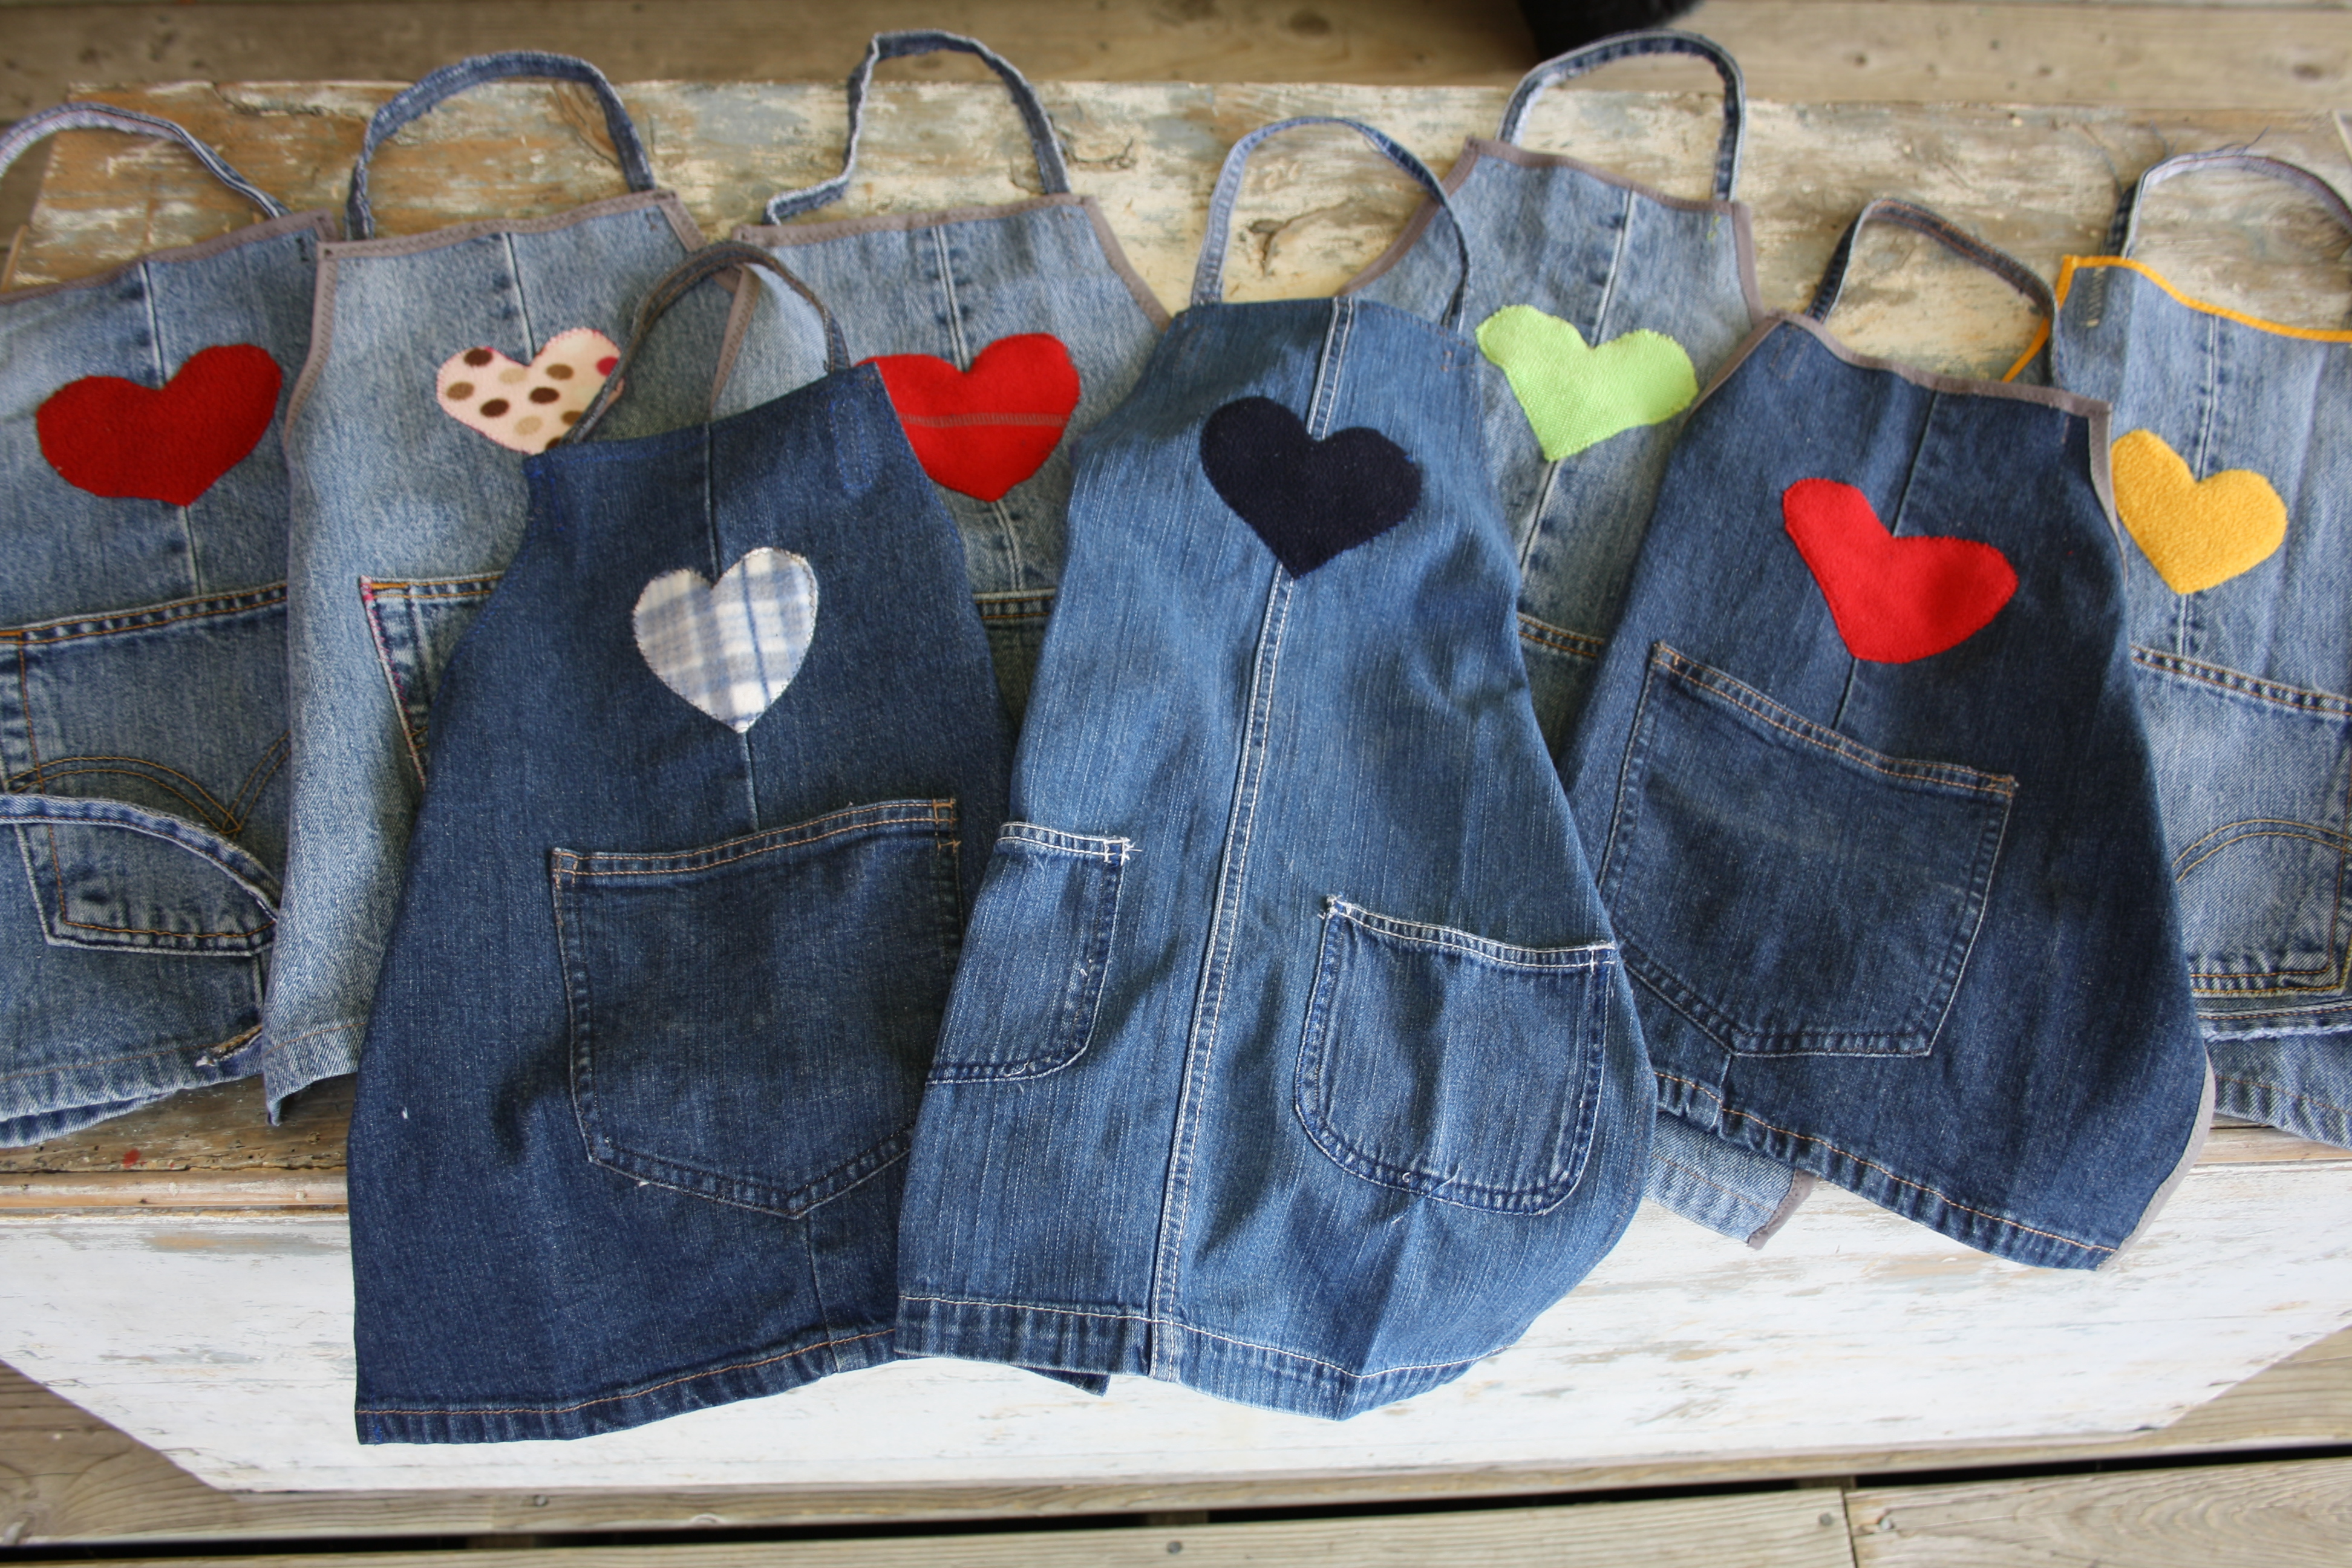 Upcycled jean Aprons